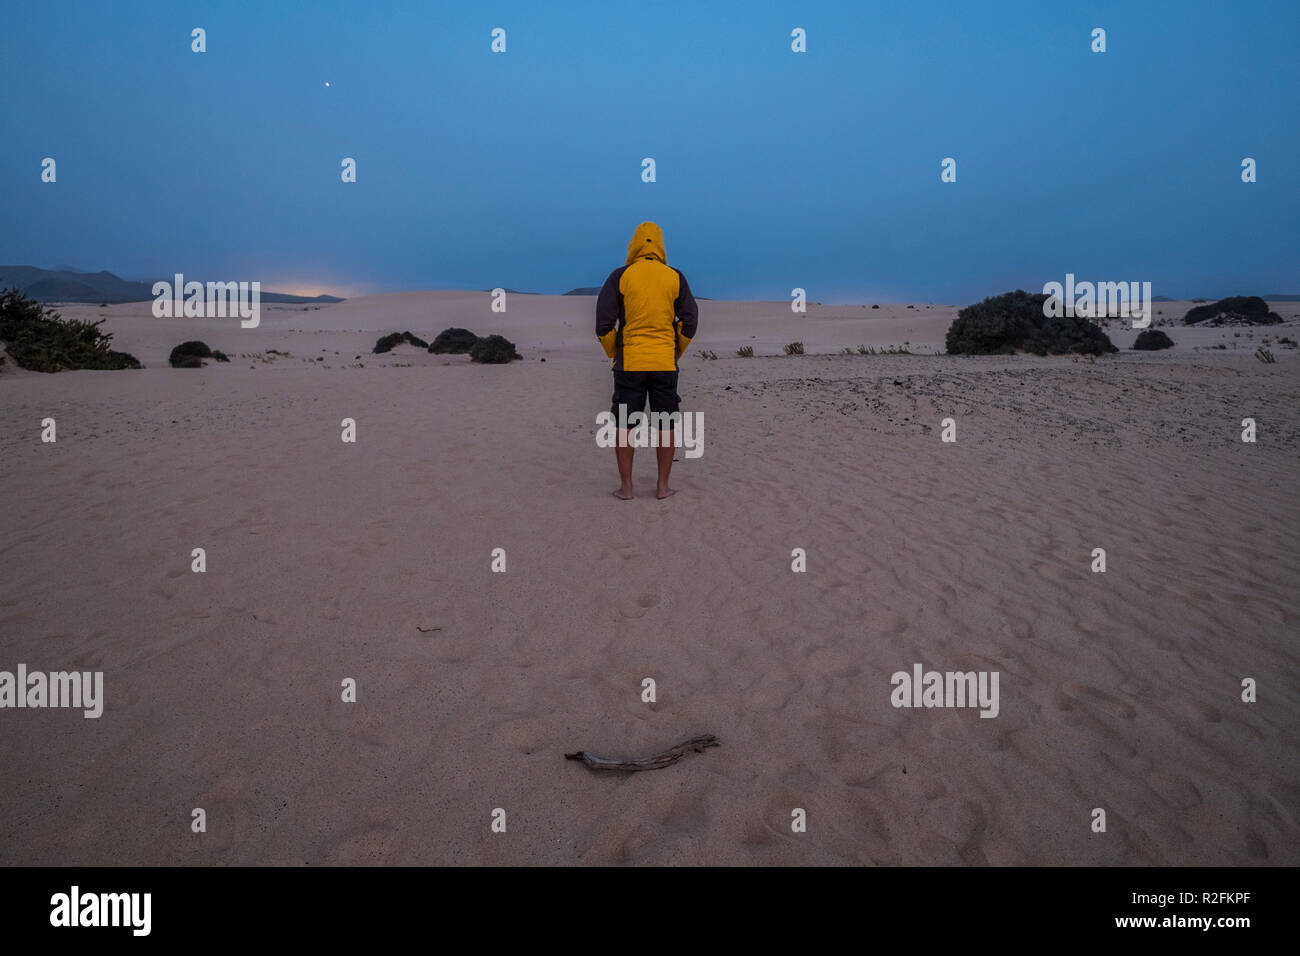 single man with yello jacket wait and stand in the middle of the desert of corralejo fuerteventura by night in the evening. cold and enjoying the nature around wth nobody for alternative vacation and lifestyle concept - Stock Image